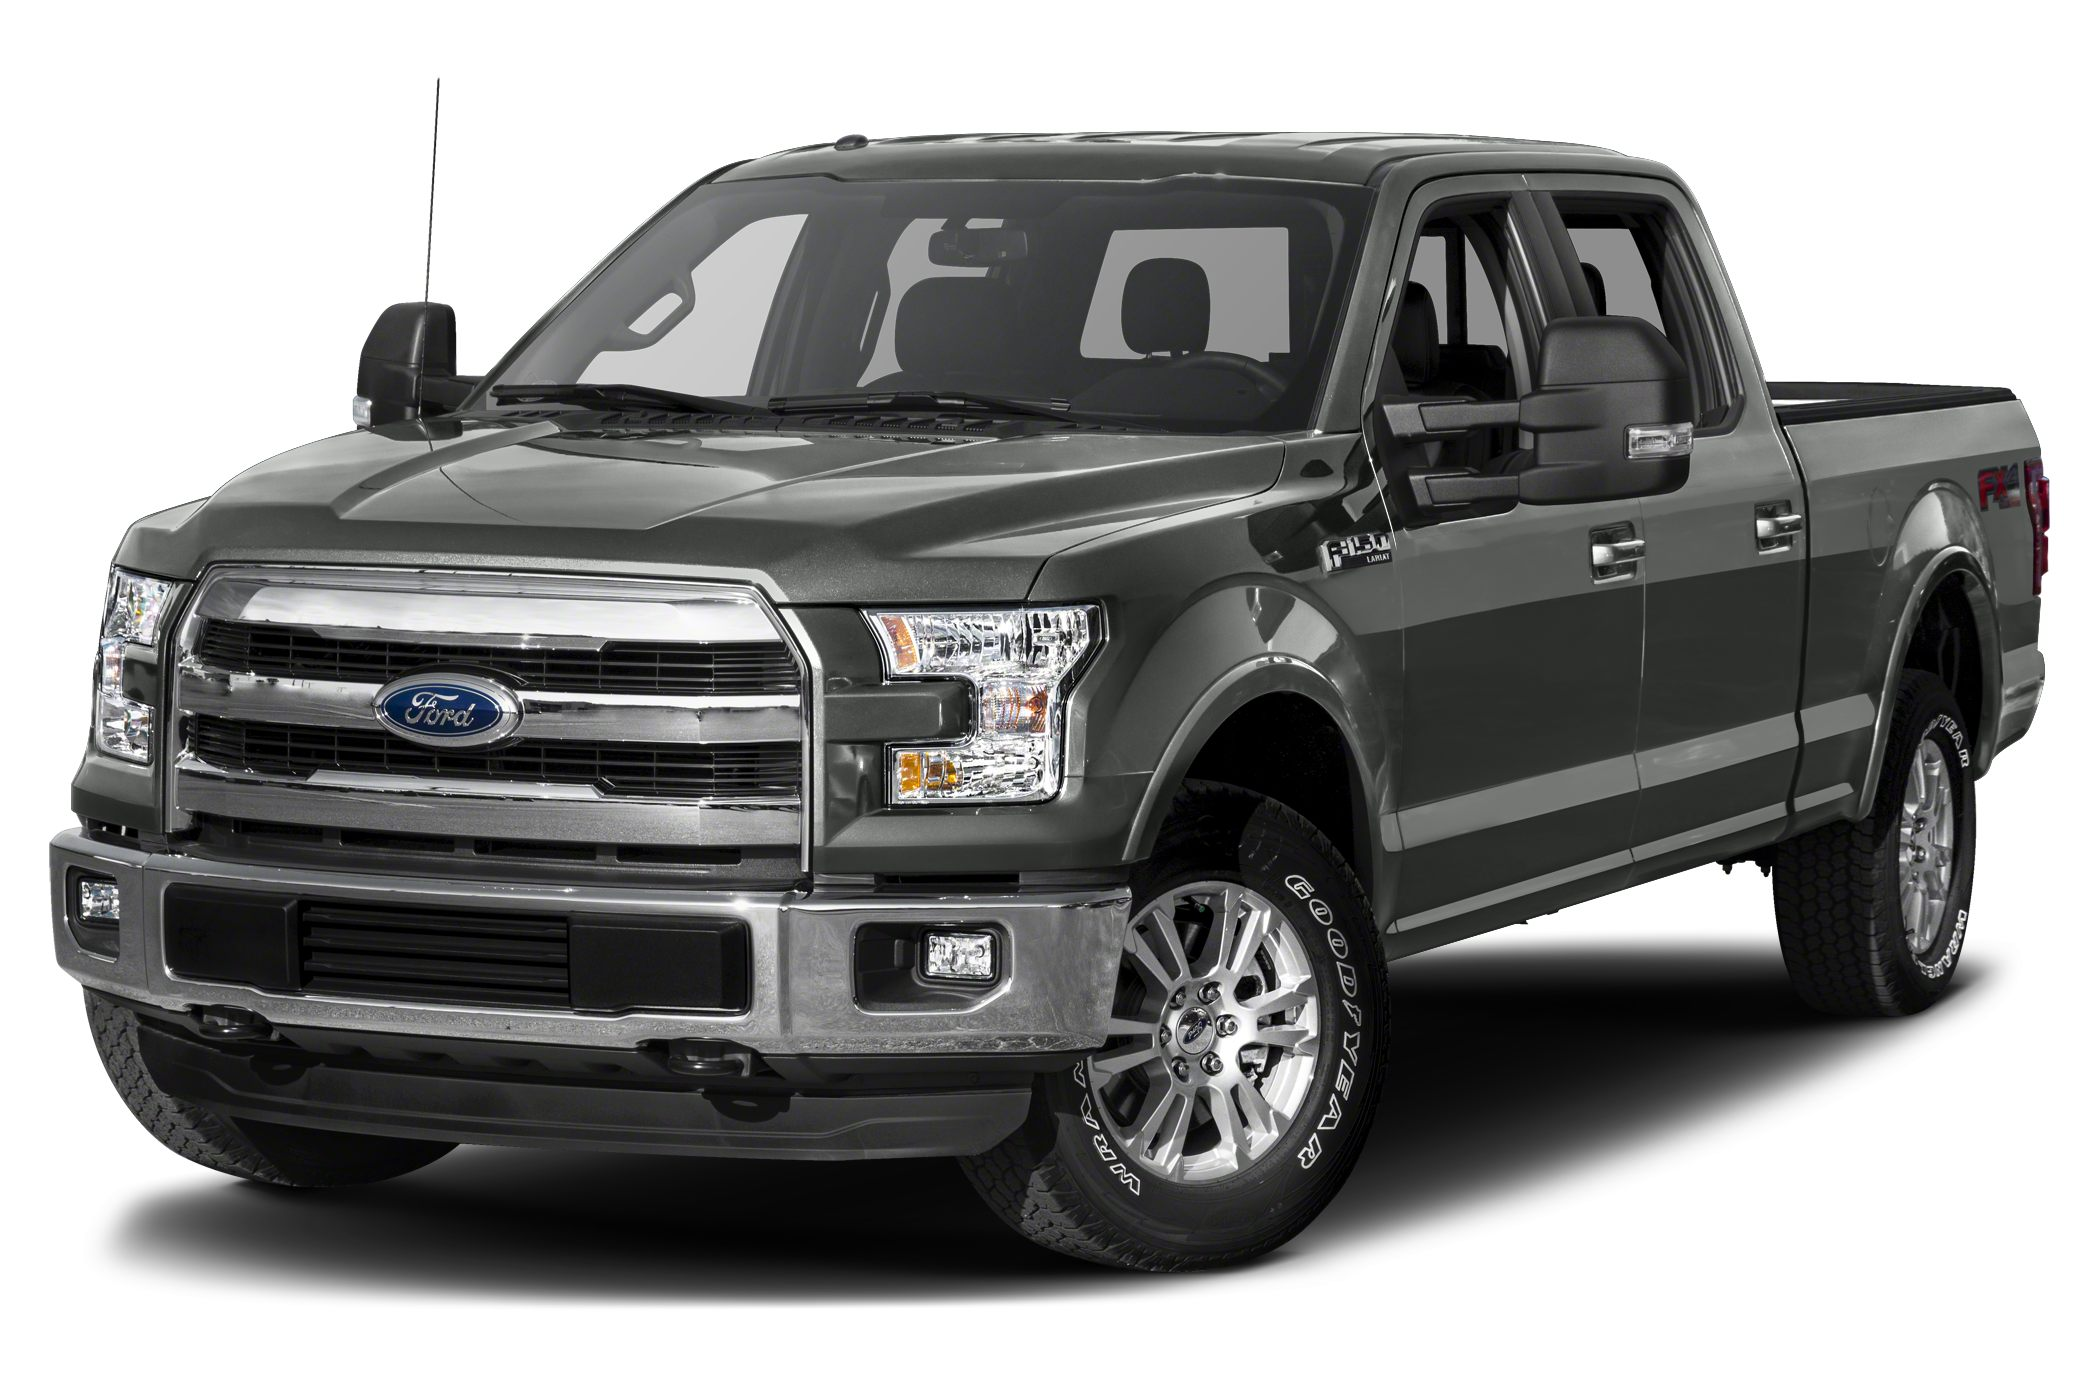 2016 Ford F-150 Lariat Youve never felt safer than when you cruise with anti-lock brakes tractio